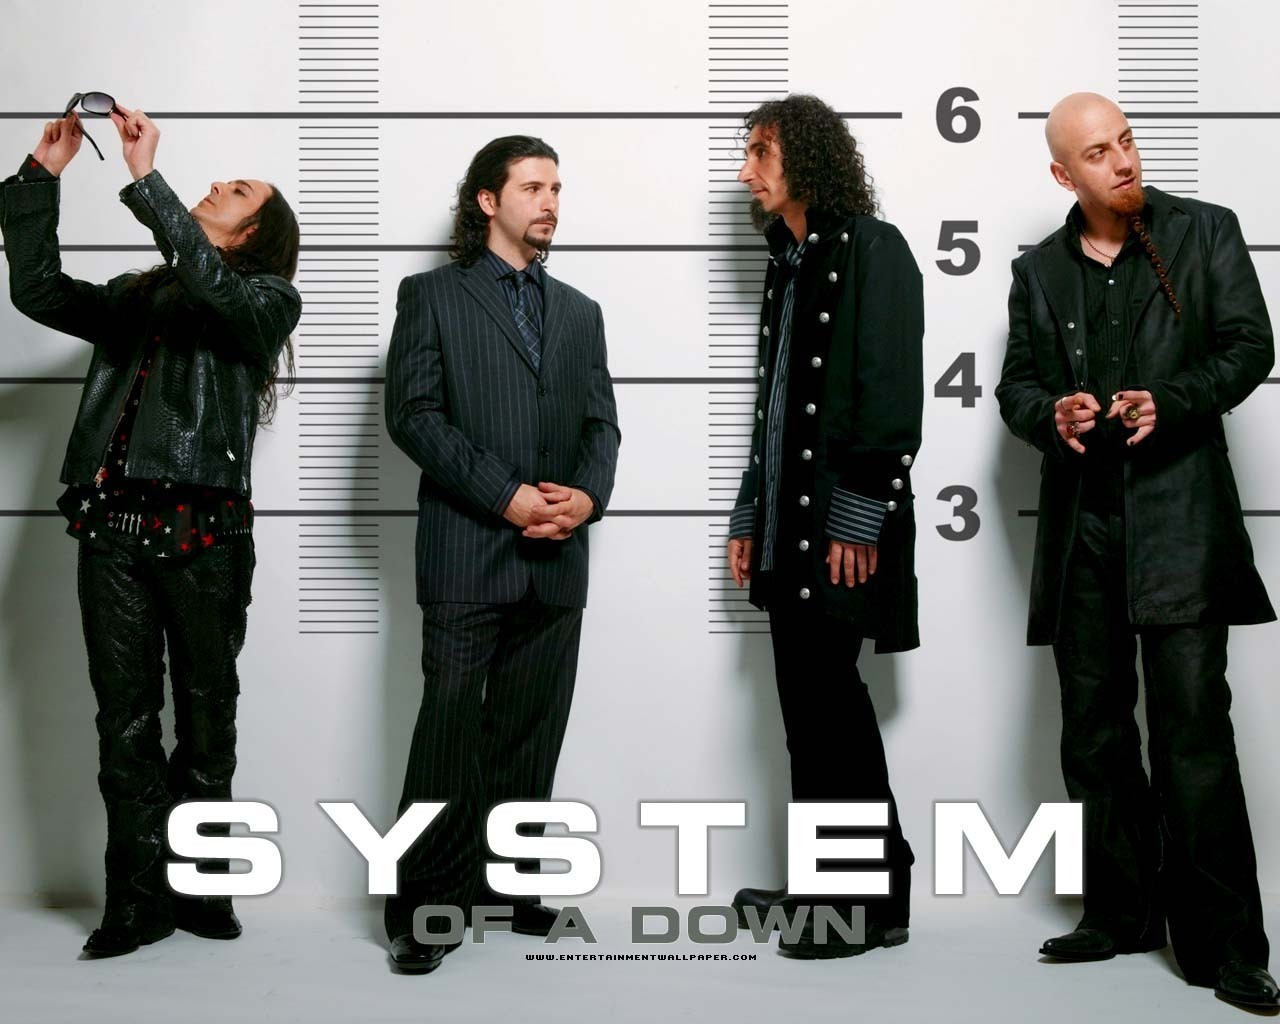 System Of A Down system of a down 1345550 1280 1024jpg 1280x1024